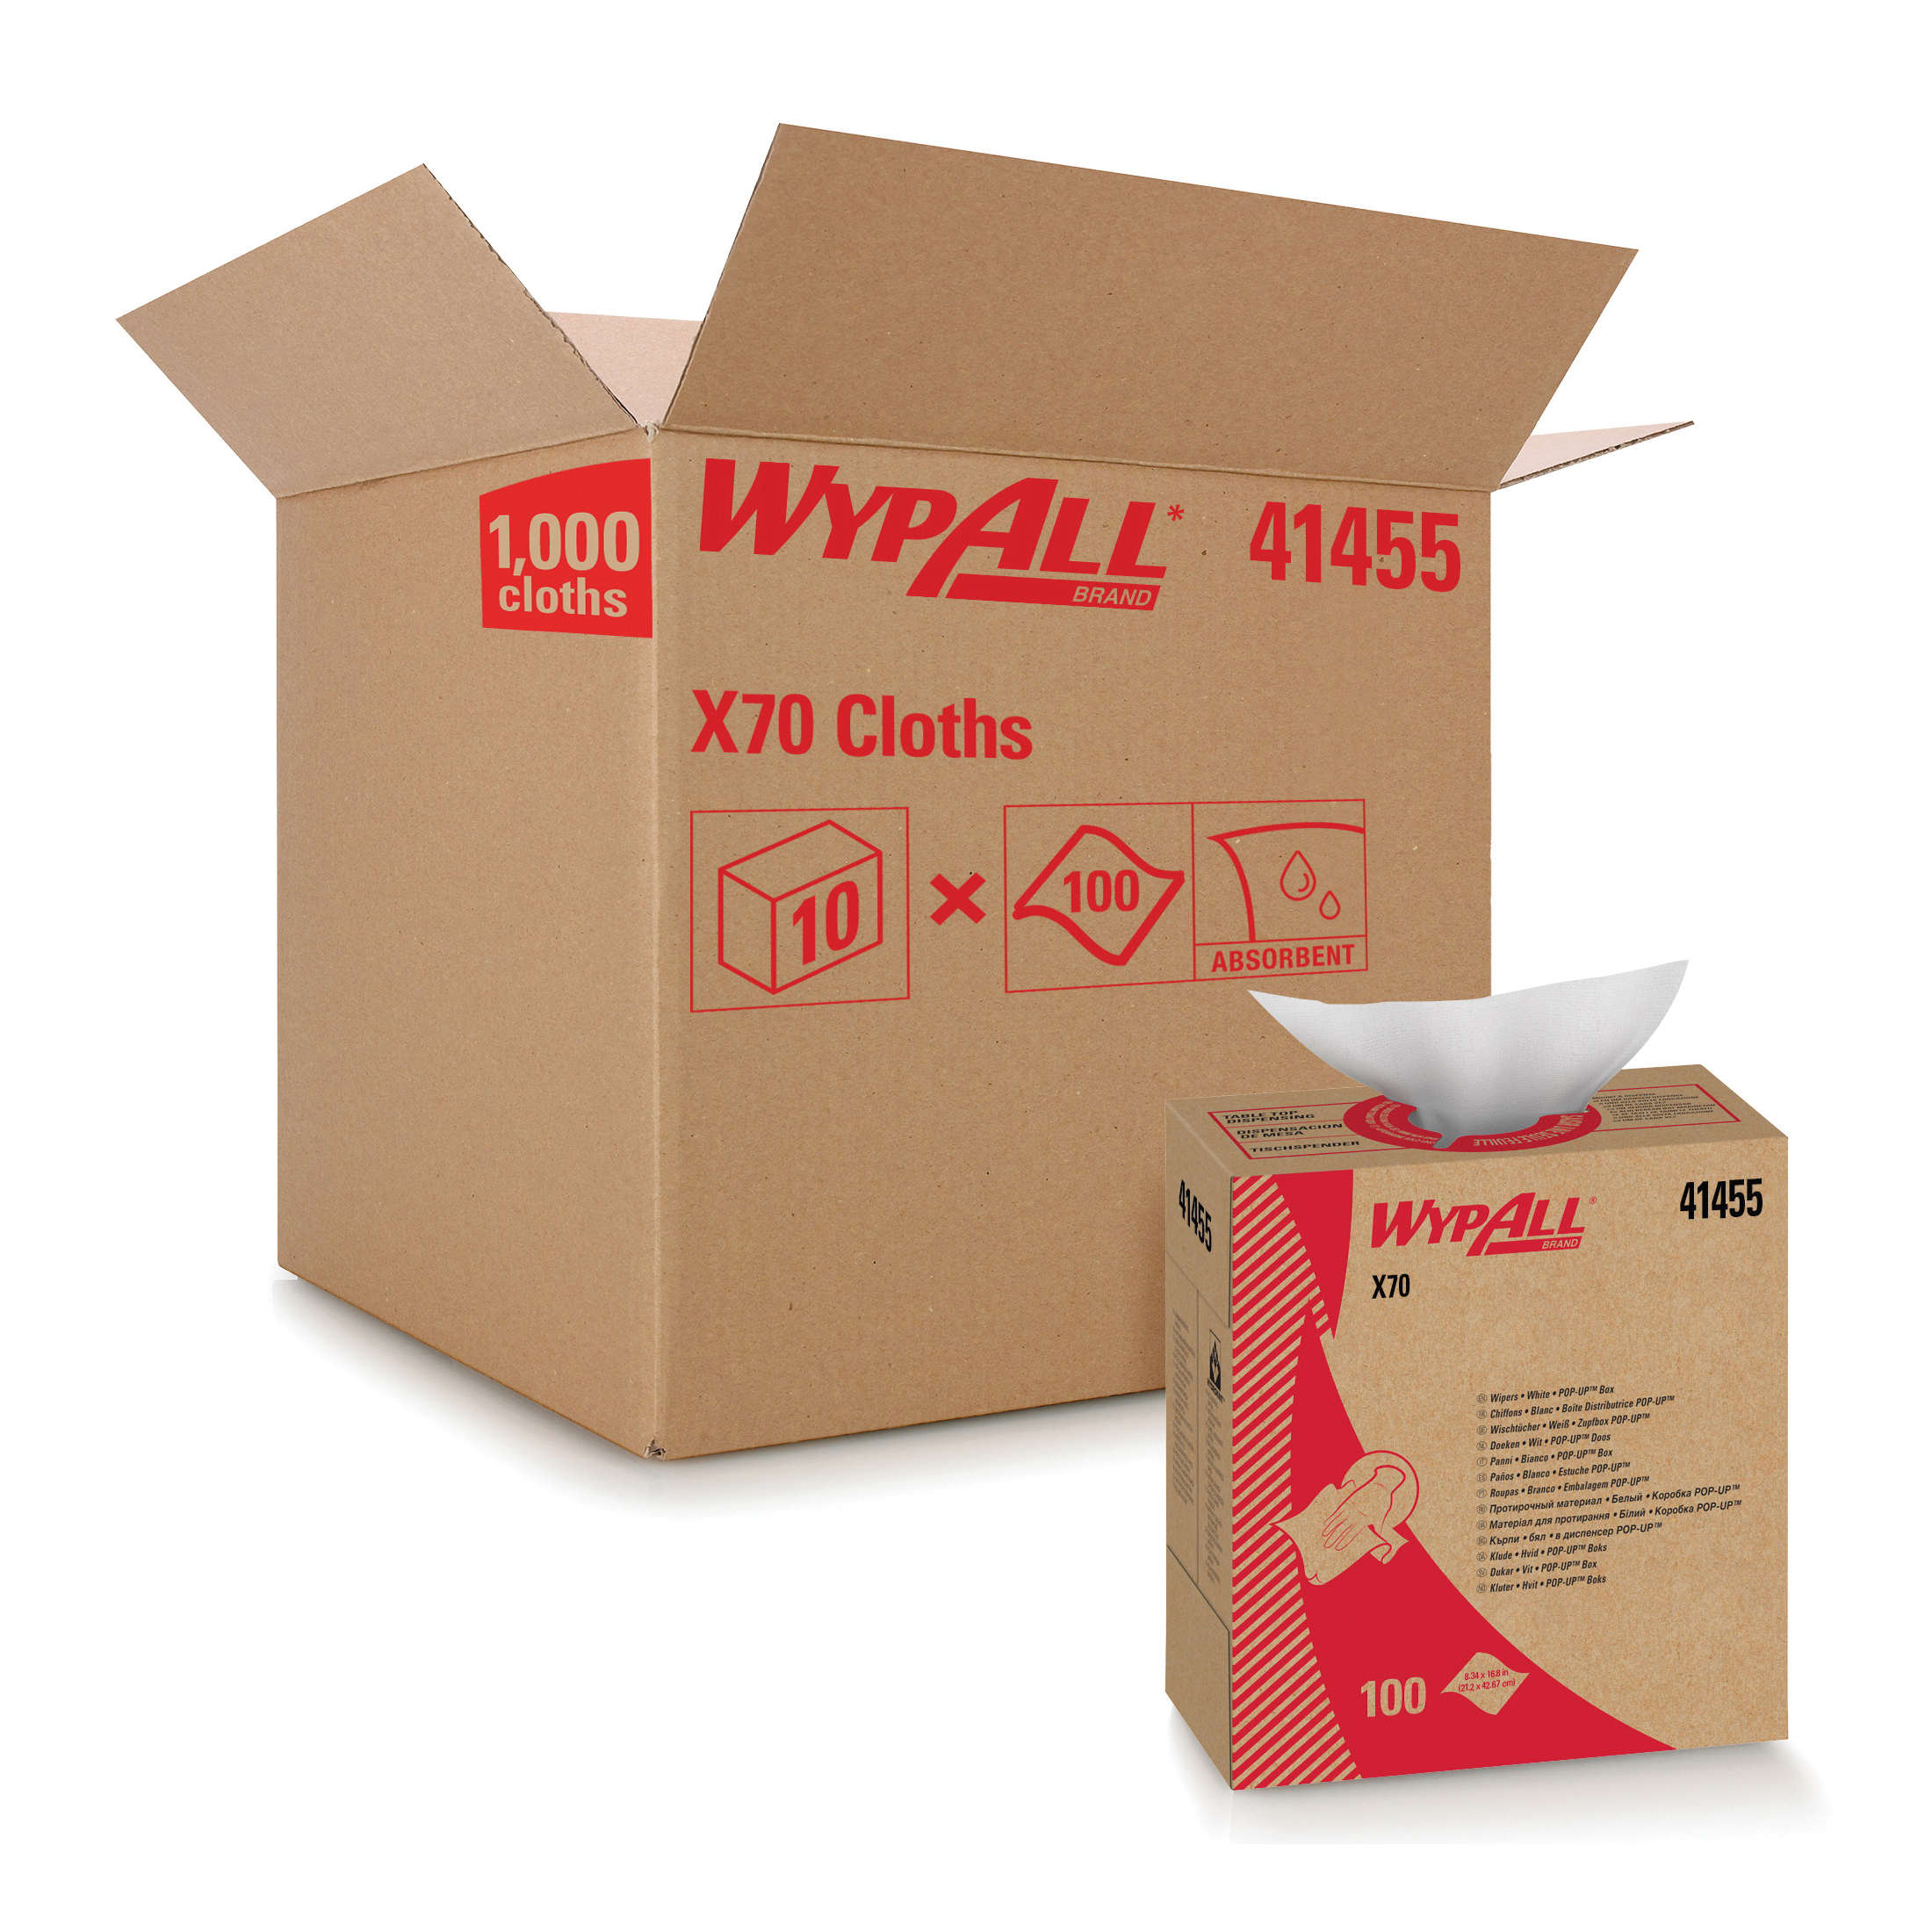 WypAll* 41100 X70 Long Lasting Reusable Cleaning Wiper, 14.9 x 16.6 in, 300 Sheets Capacity, Hydroknit*, White